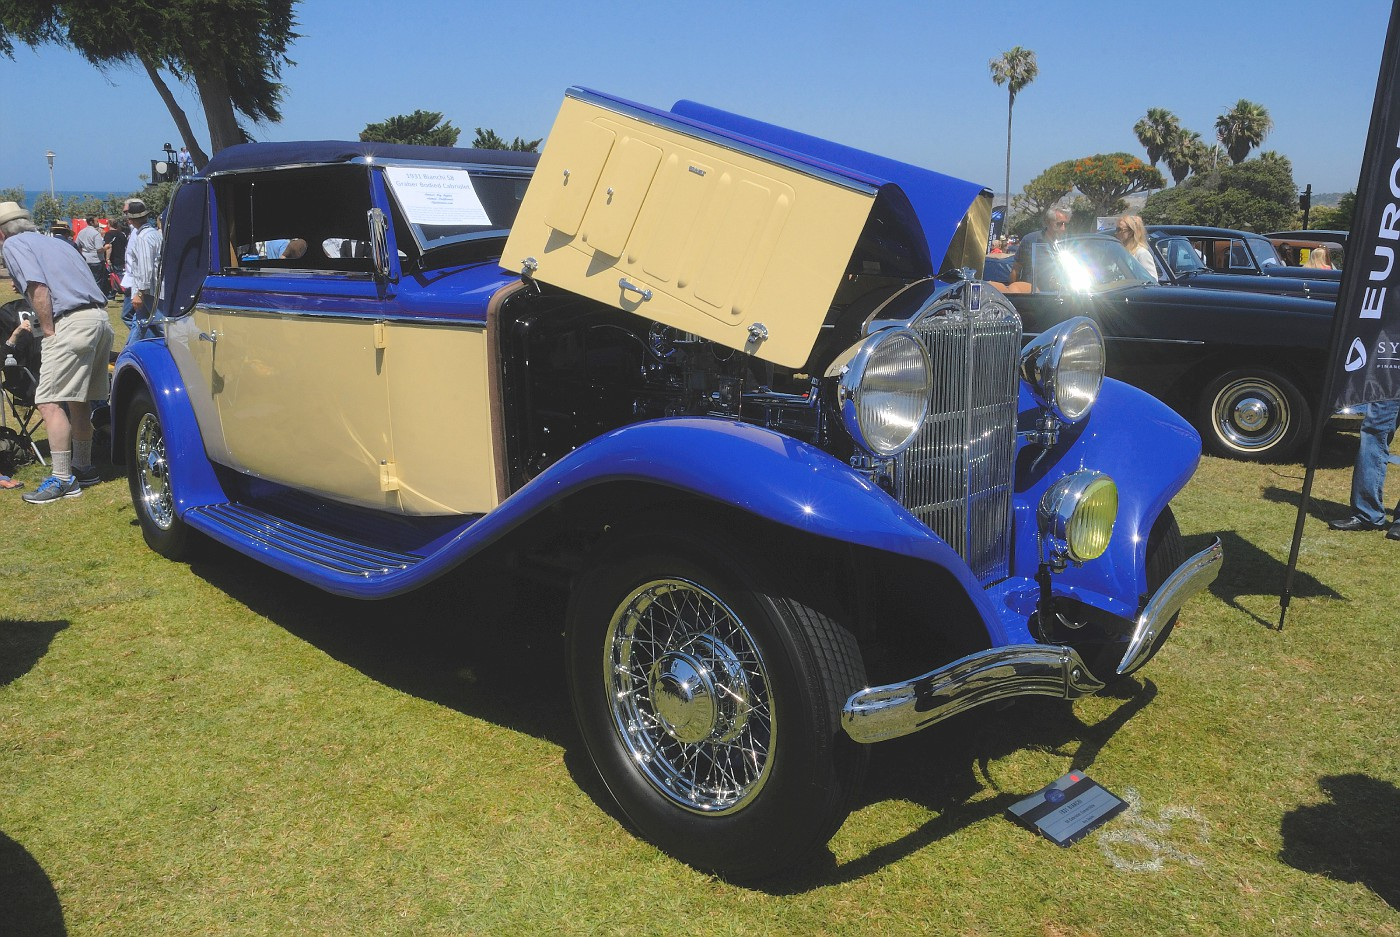 1931 Bianchi S8 Cabriolet owned by Roy Sayles